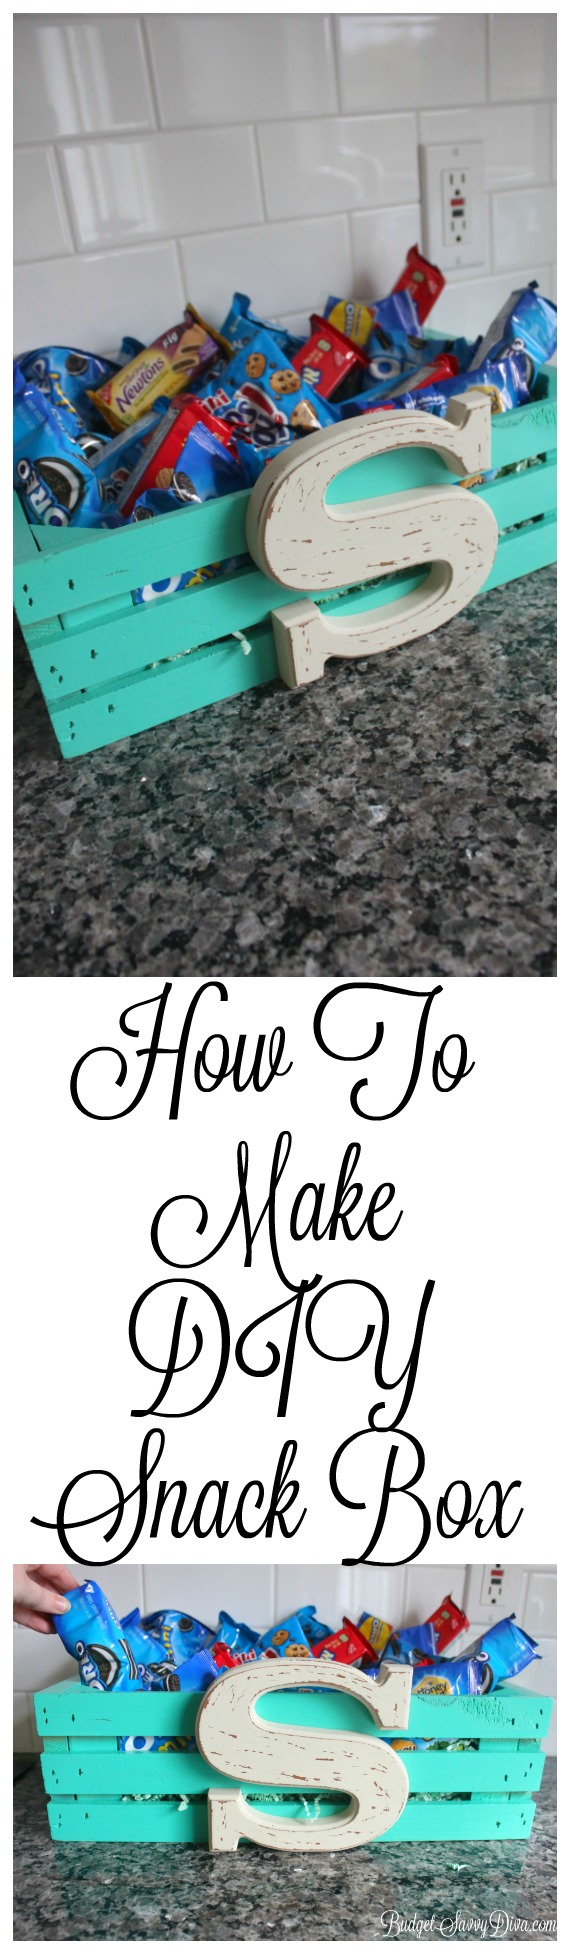 How To Make DIY Snack Box